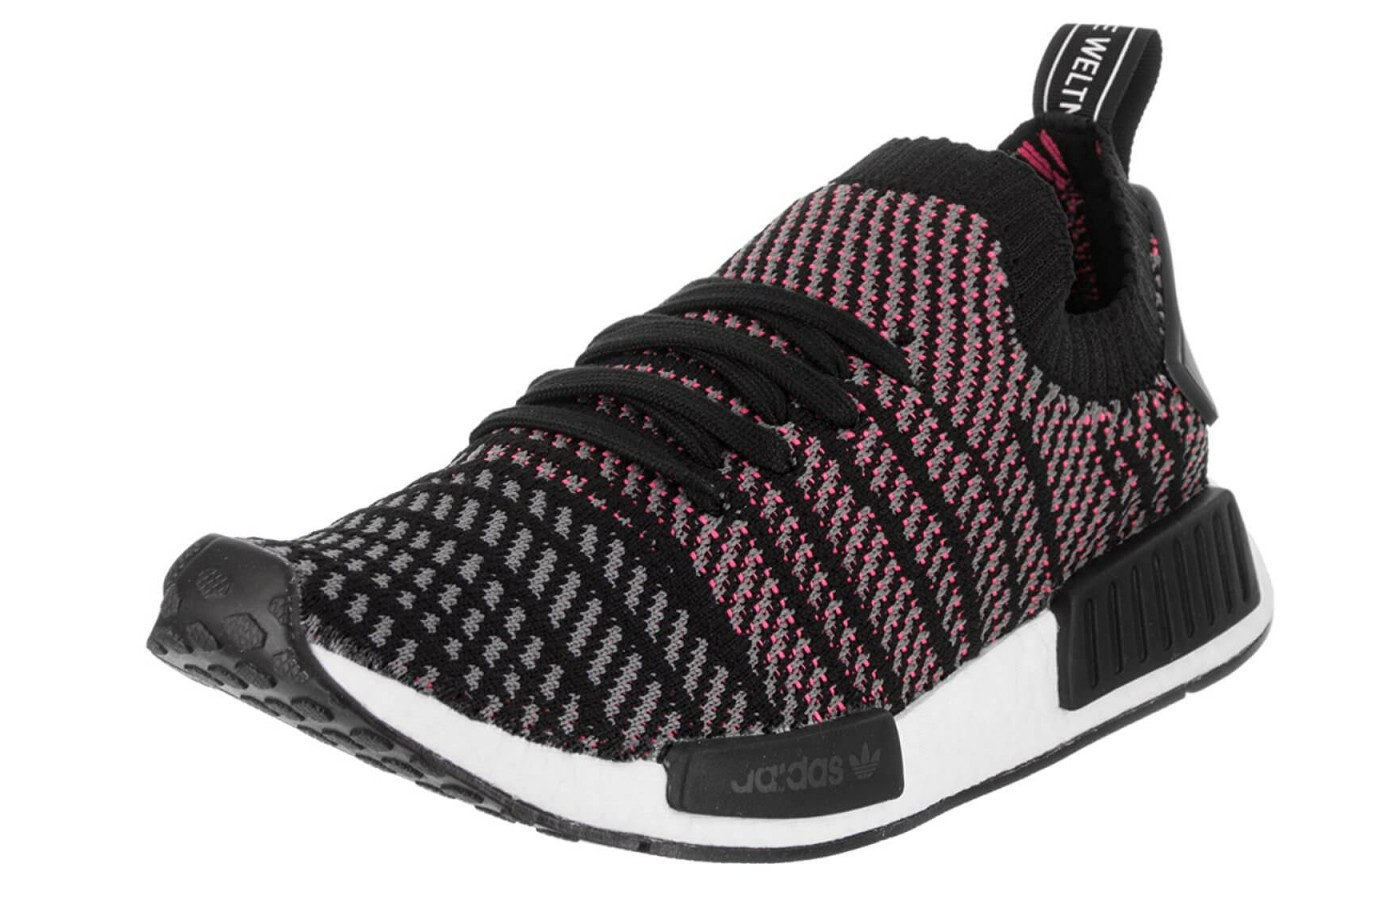 75eb80638edb The Adidas NMD R1 Stlt Primeknit features a Primeknit upper ...